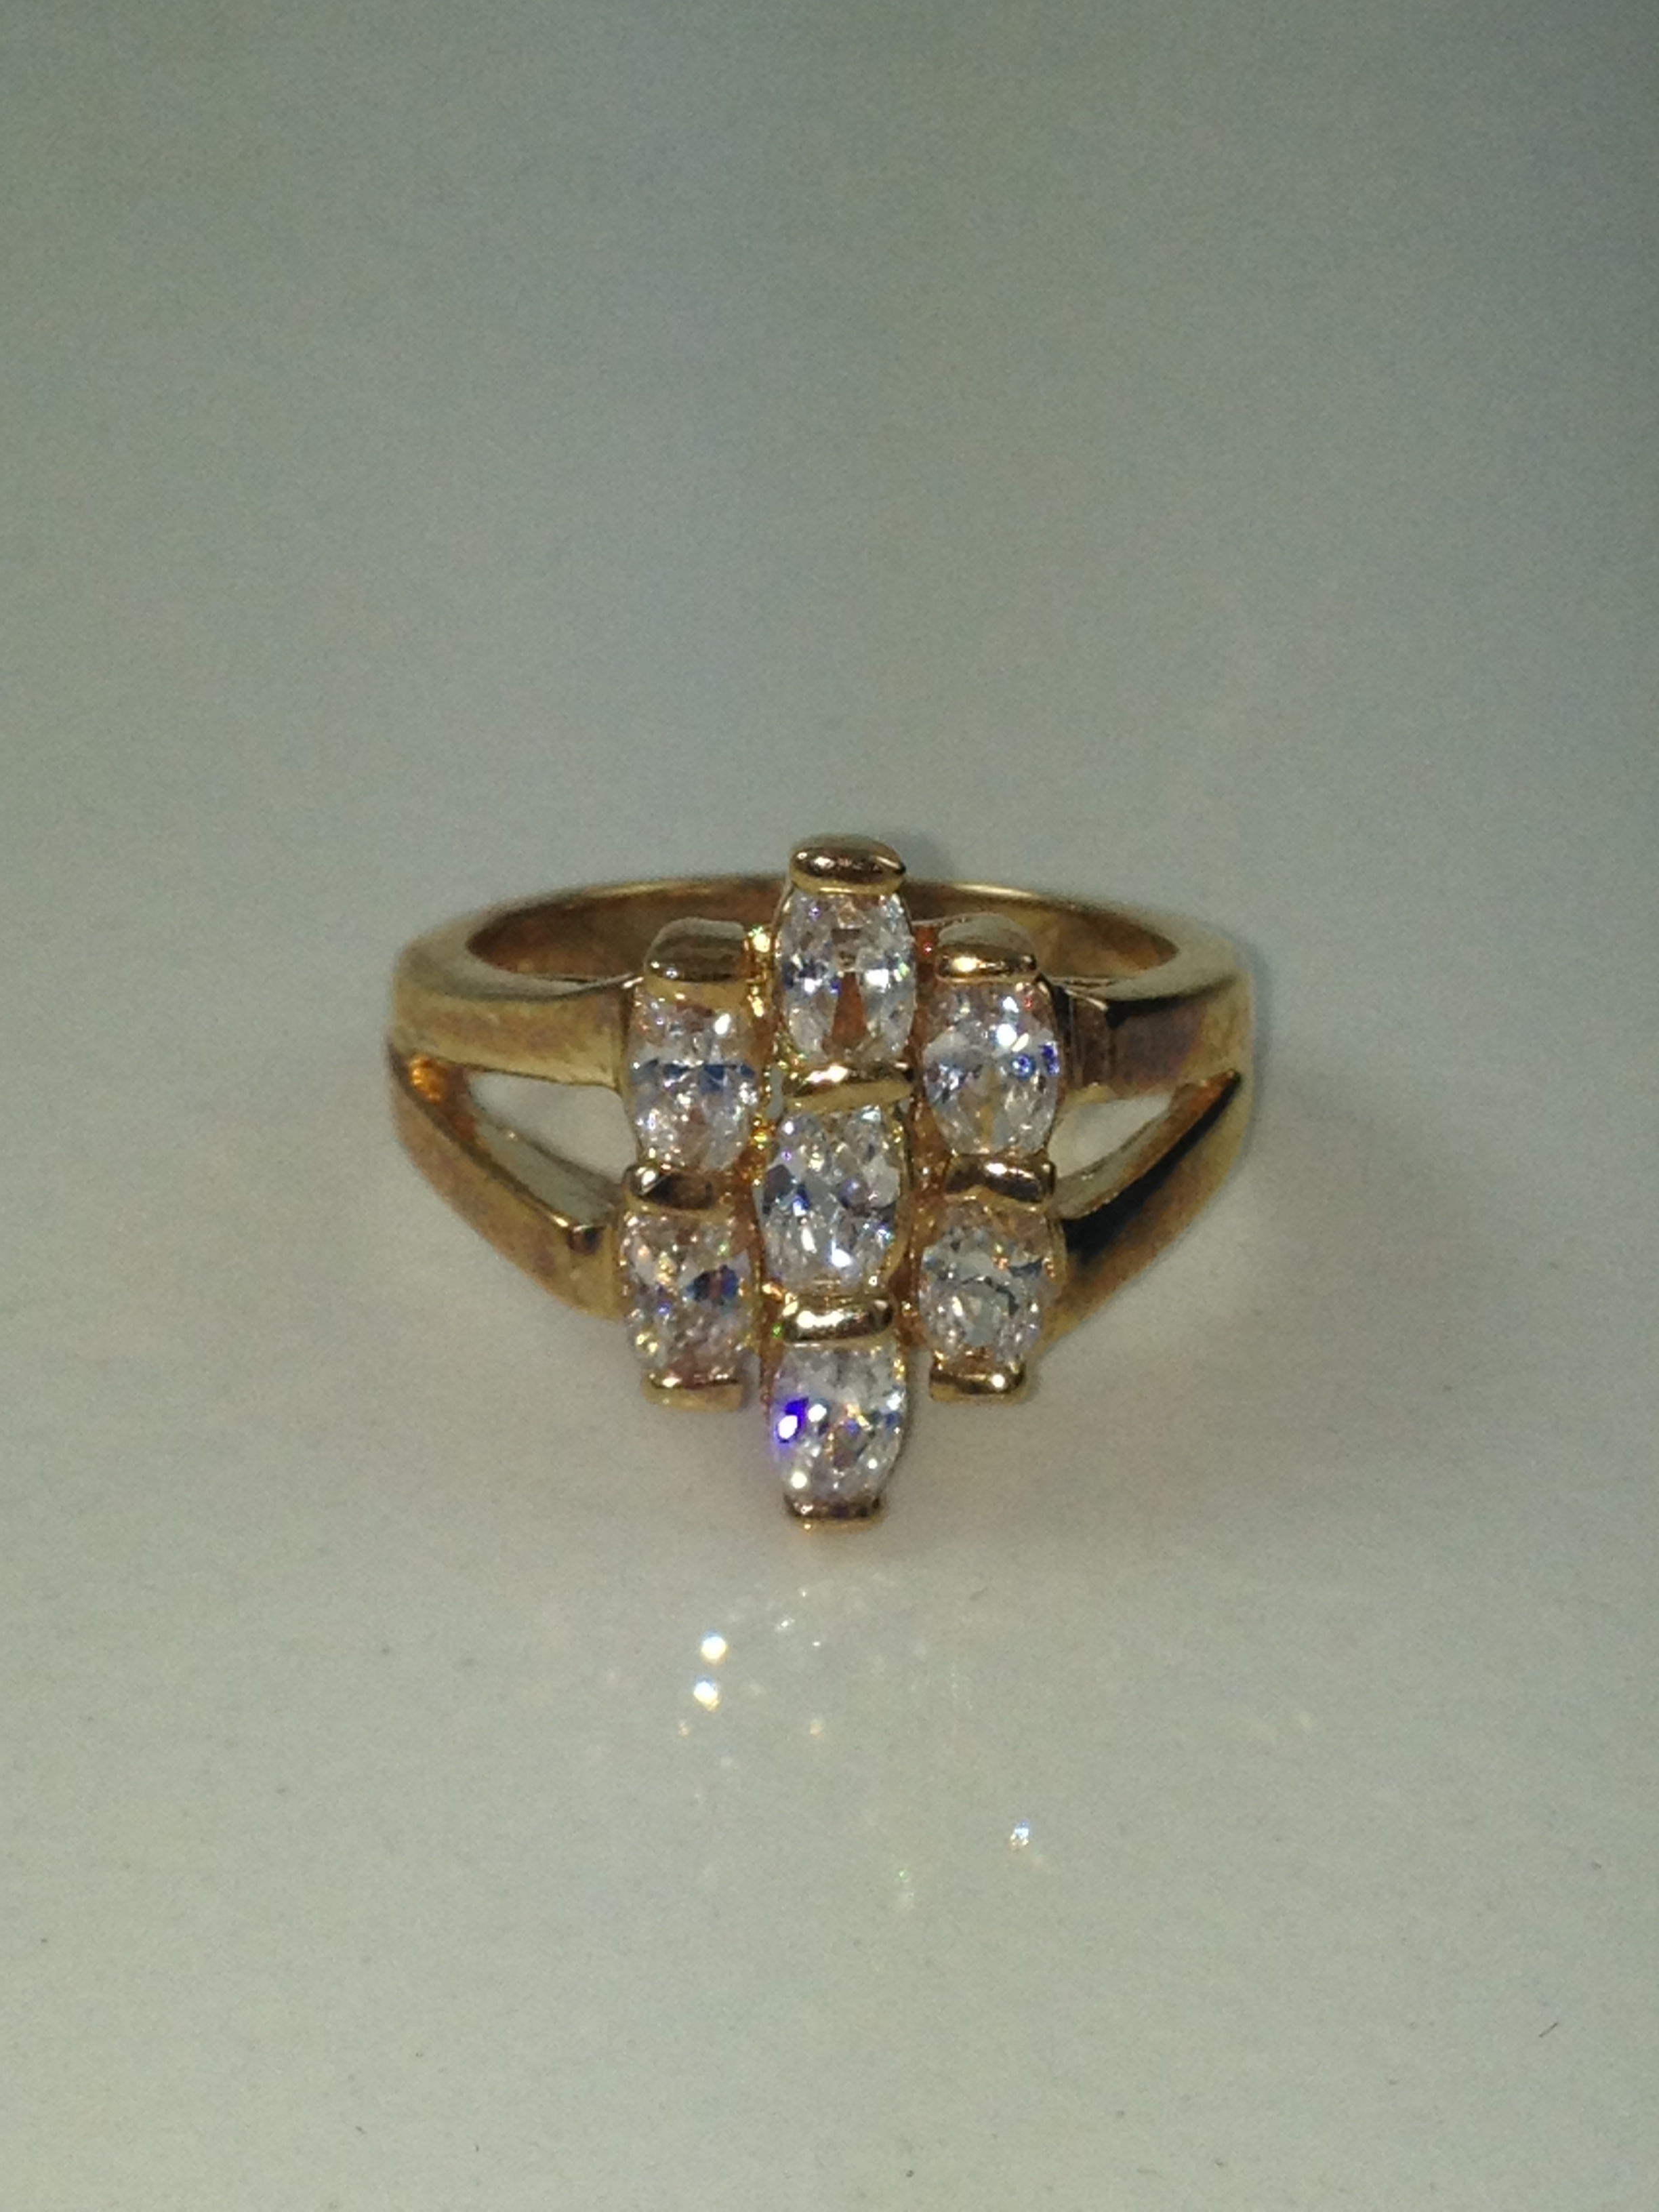 DR010 - SEVEN OVAL CUBIC ZIRCONIA CLUSTER RING